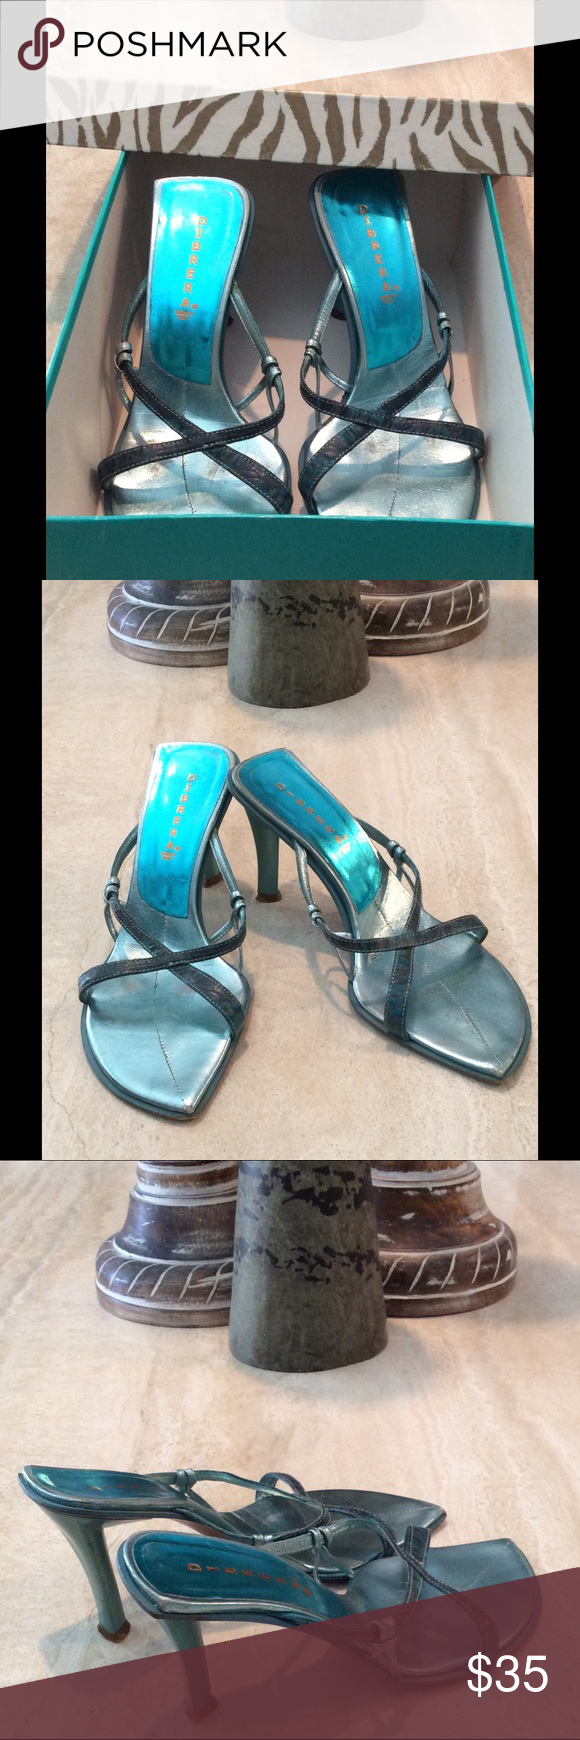 DIBRERA Heels by Paola Zannoli Pre-Owned Heels Made in Italy Sz 37 Scuff on tip of toe DIBRERA Shoes Heels